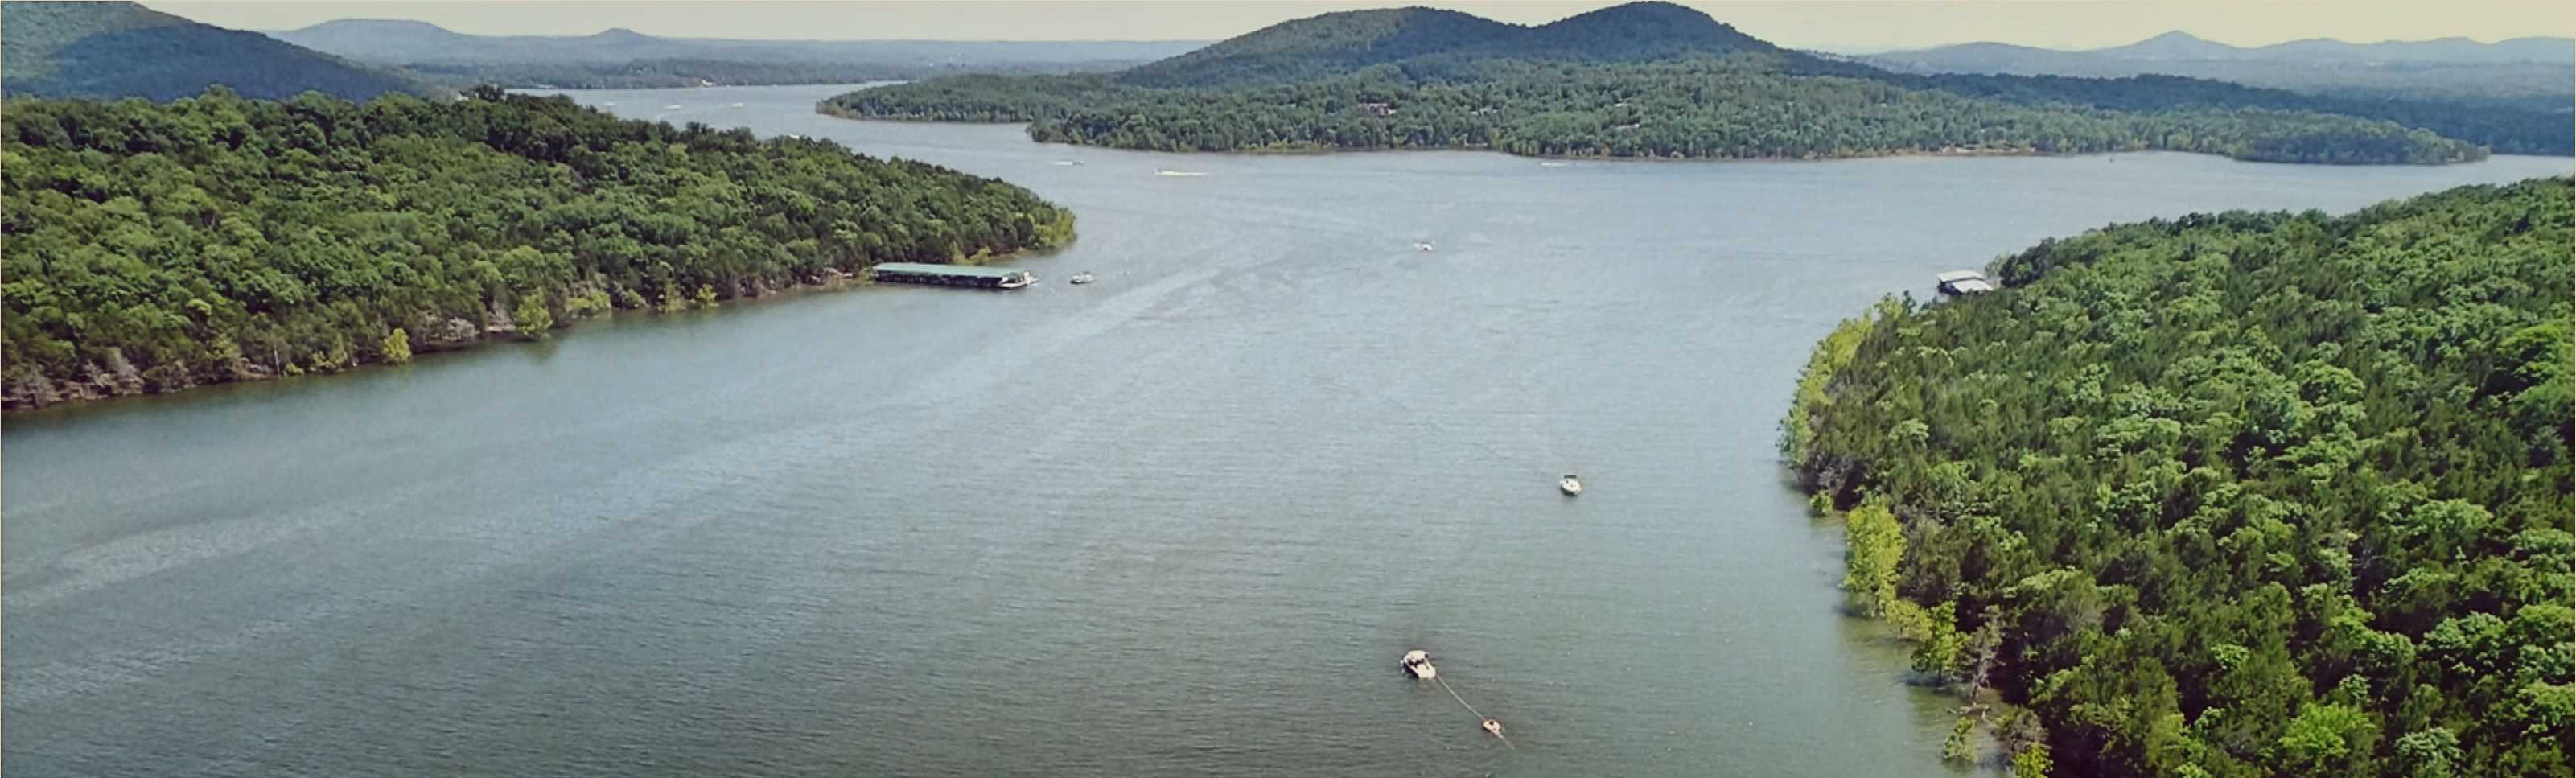 Table Rock Lake - Boatslip House for Sale On Table Rock Lake